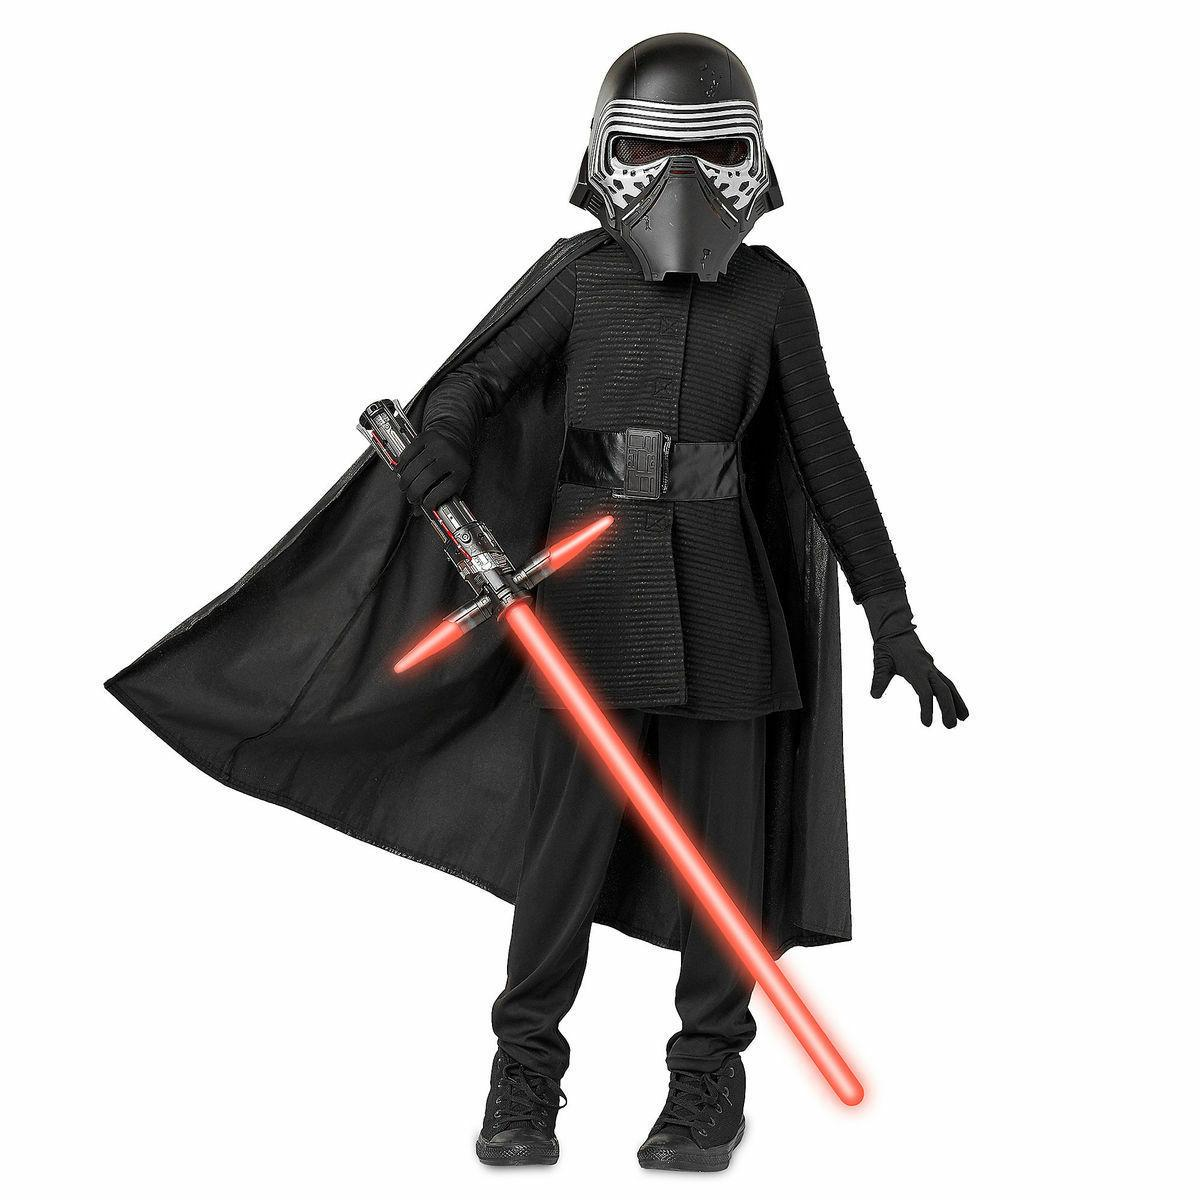 Kylo Ren Costume for Kids - Star Wars: The Last Jedi Size 13